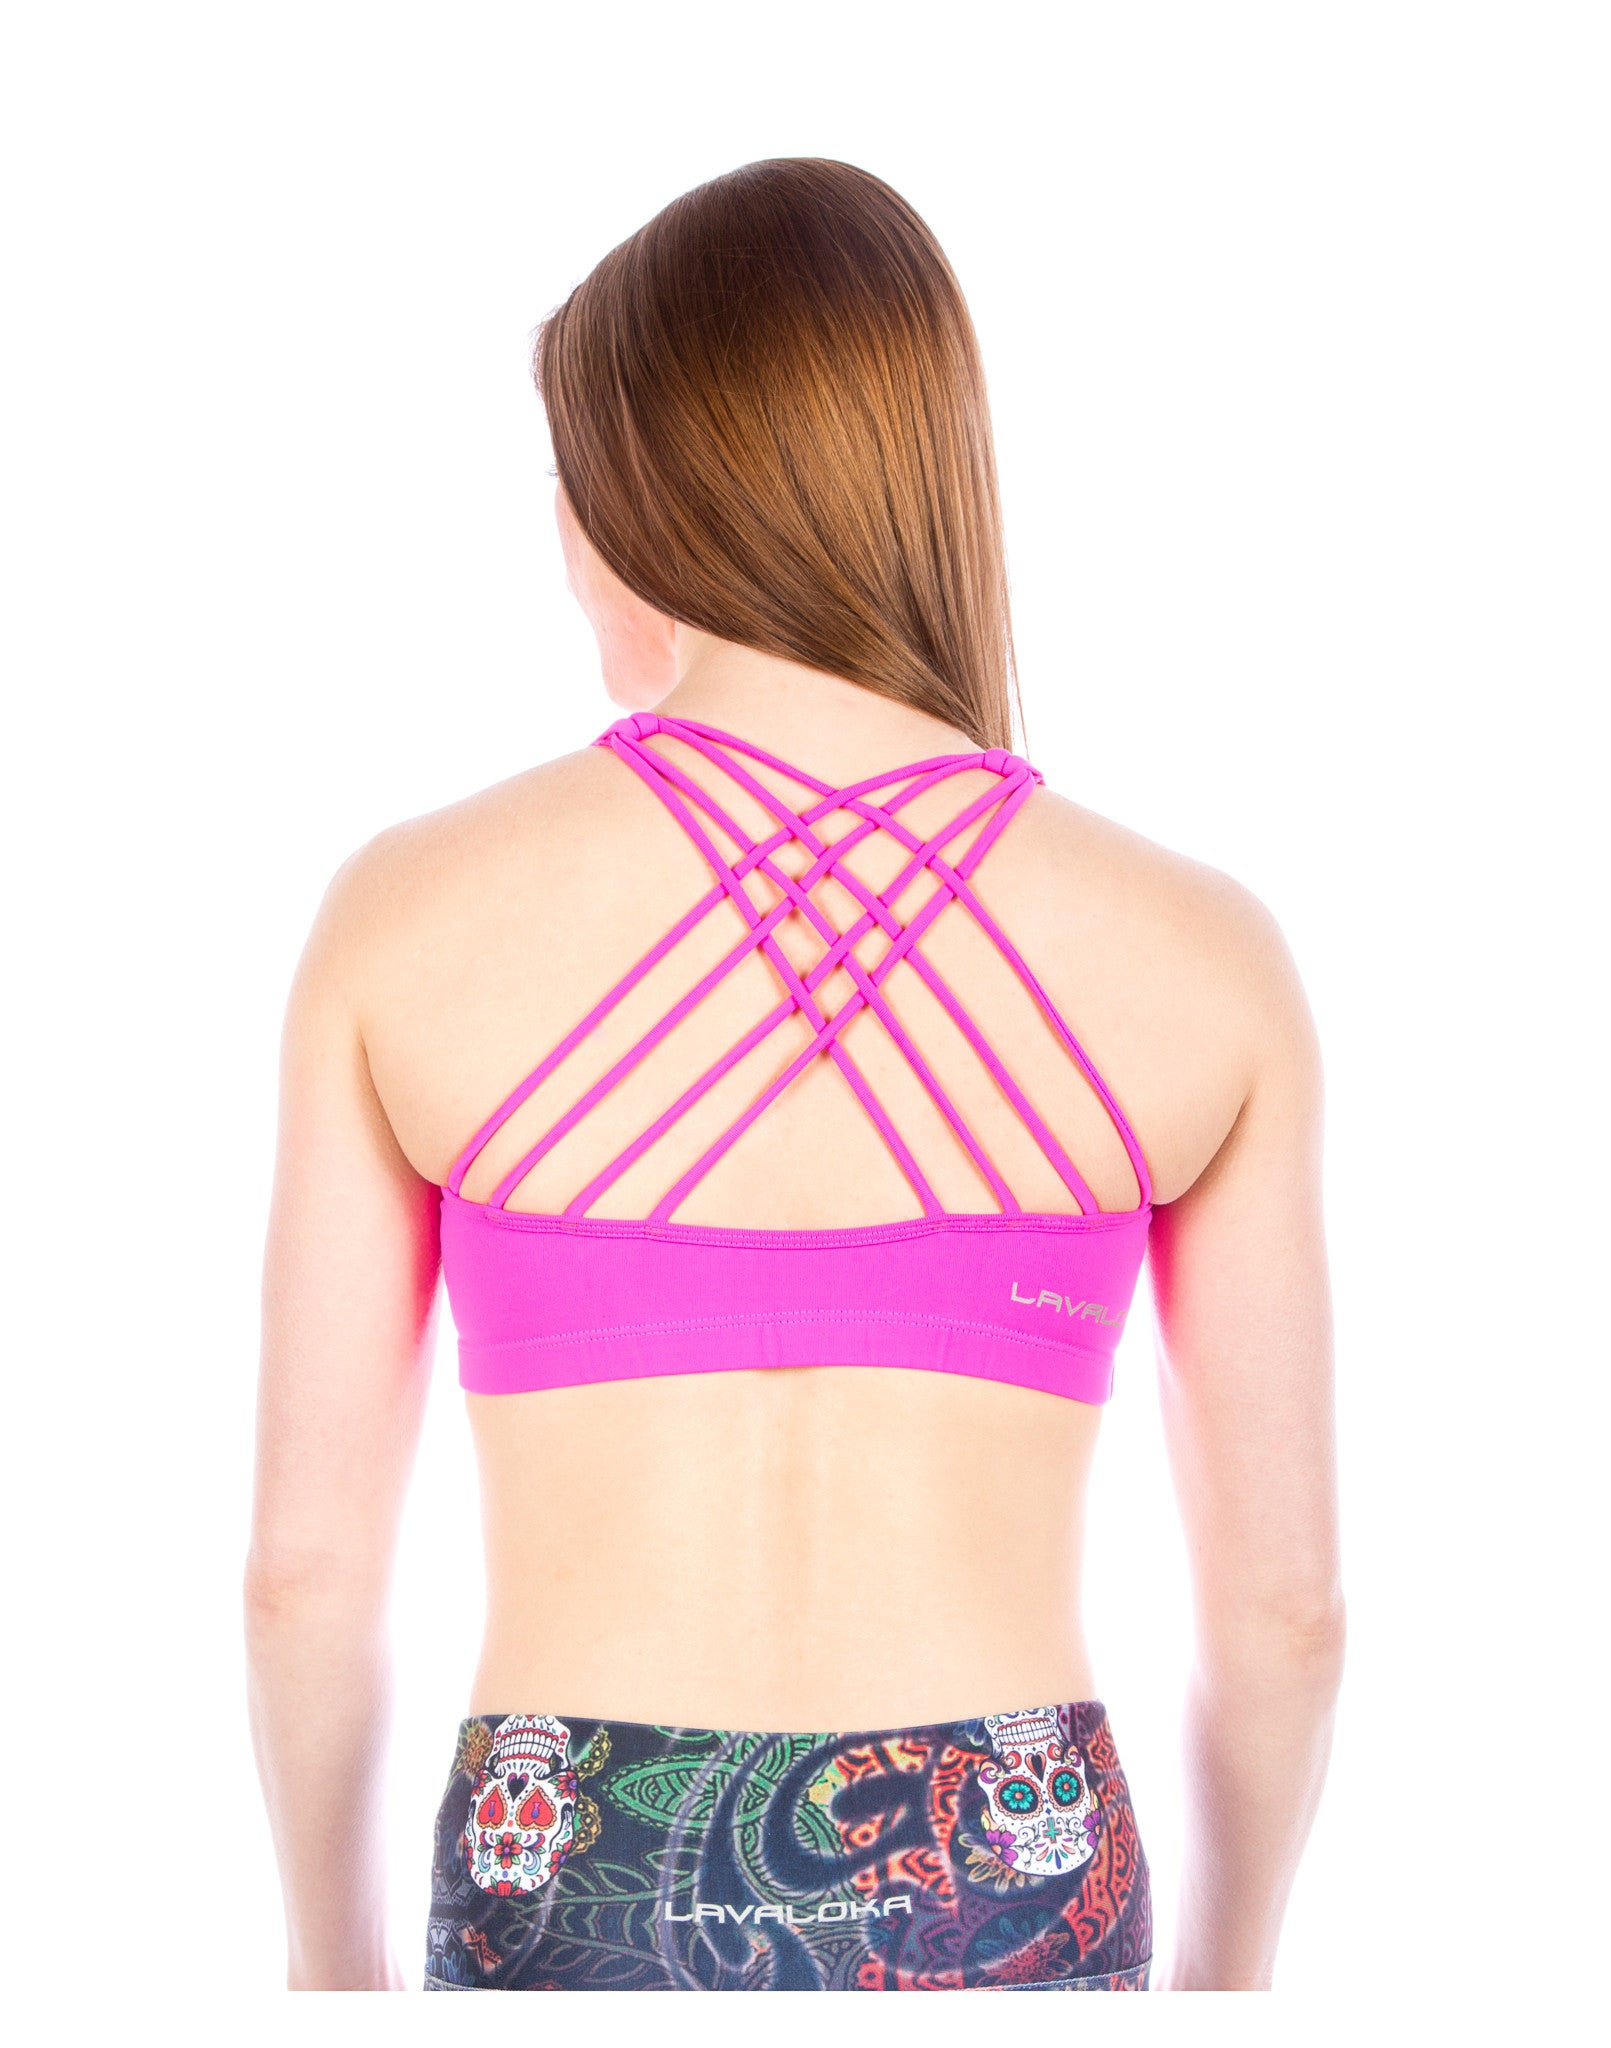 Sports Bra - Samantha Sports Bra LavaLoka - Pink - buy it in every color